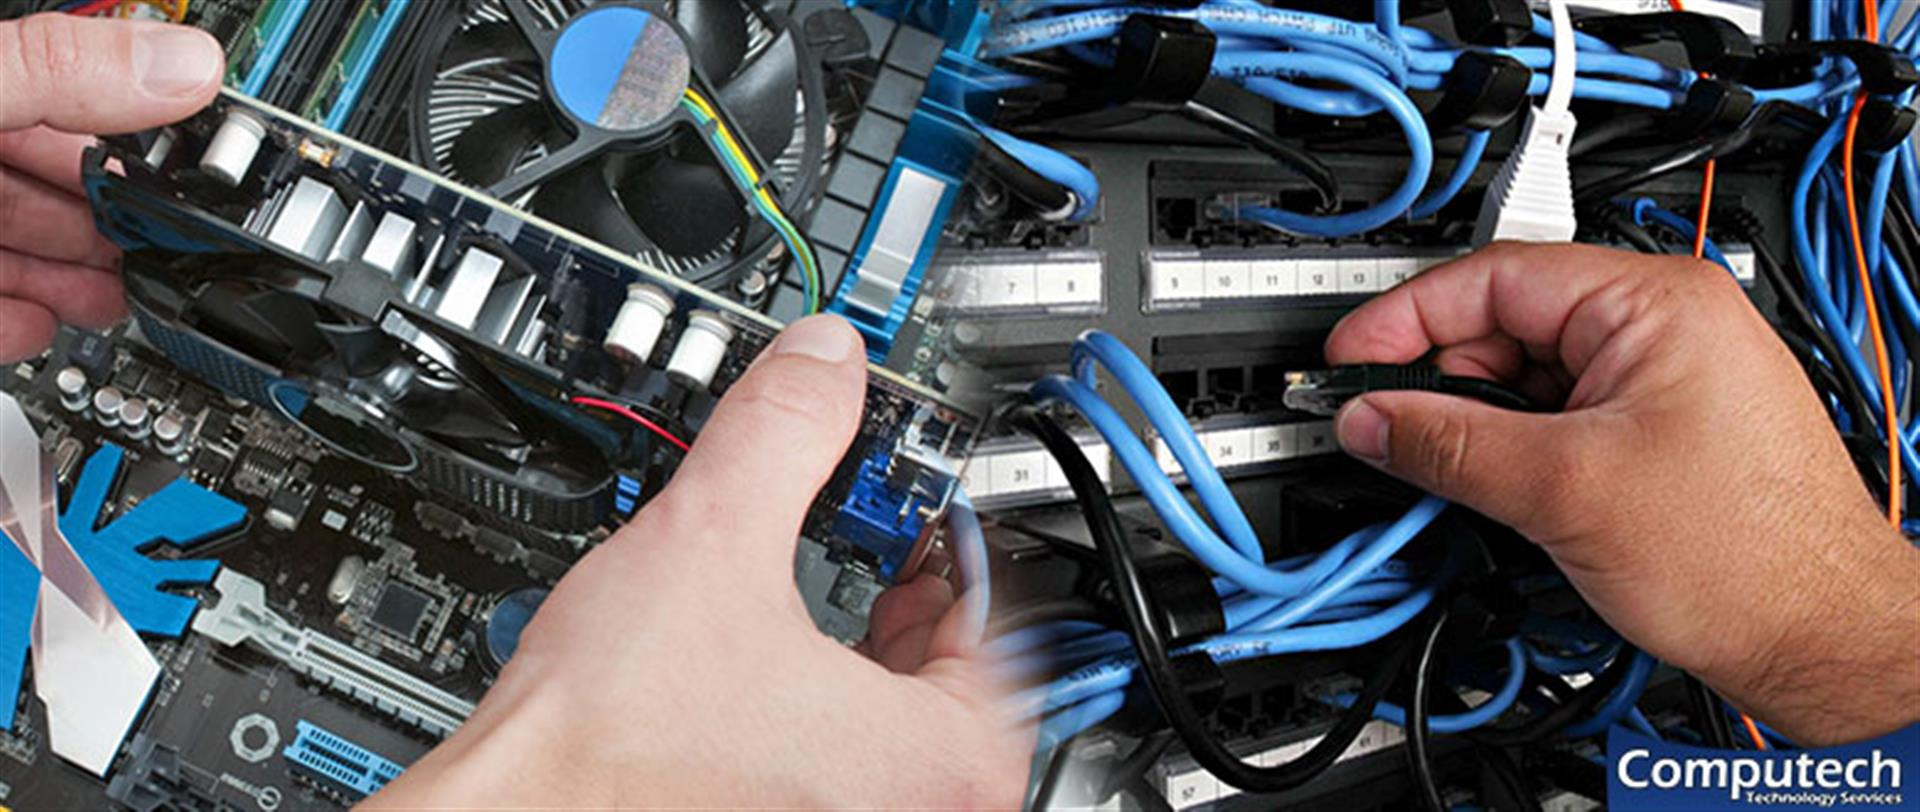 Chelsea Alabama On Site PC & Printer Repair, Network, Voice & Data Wiring Services